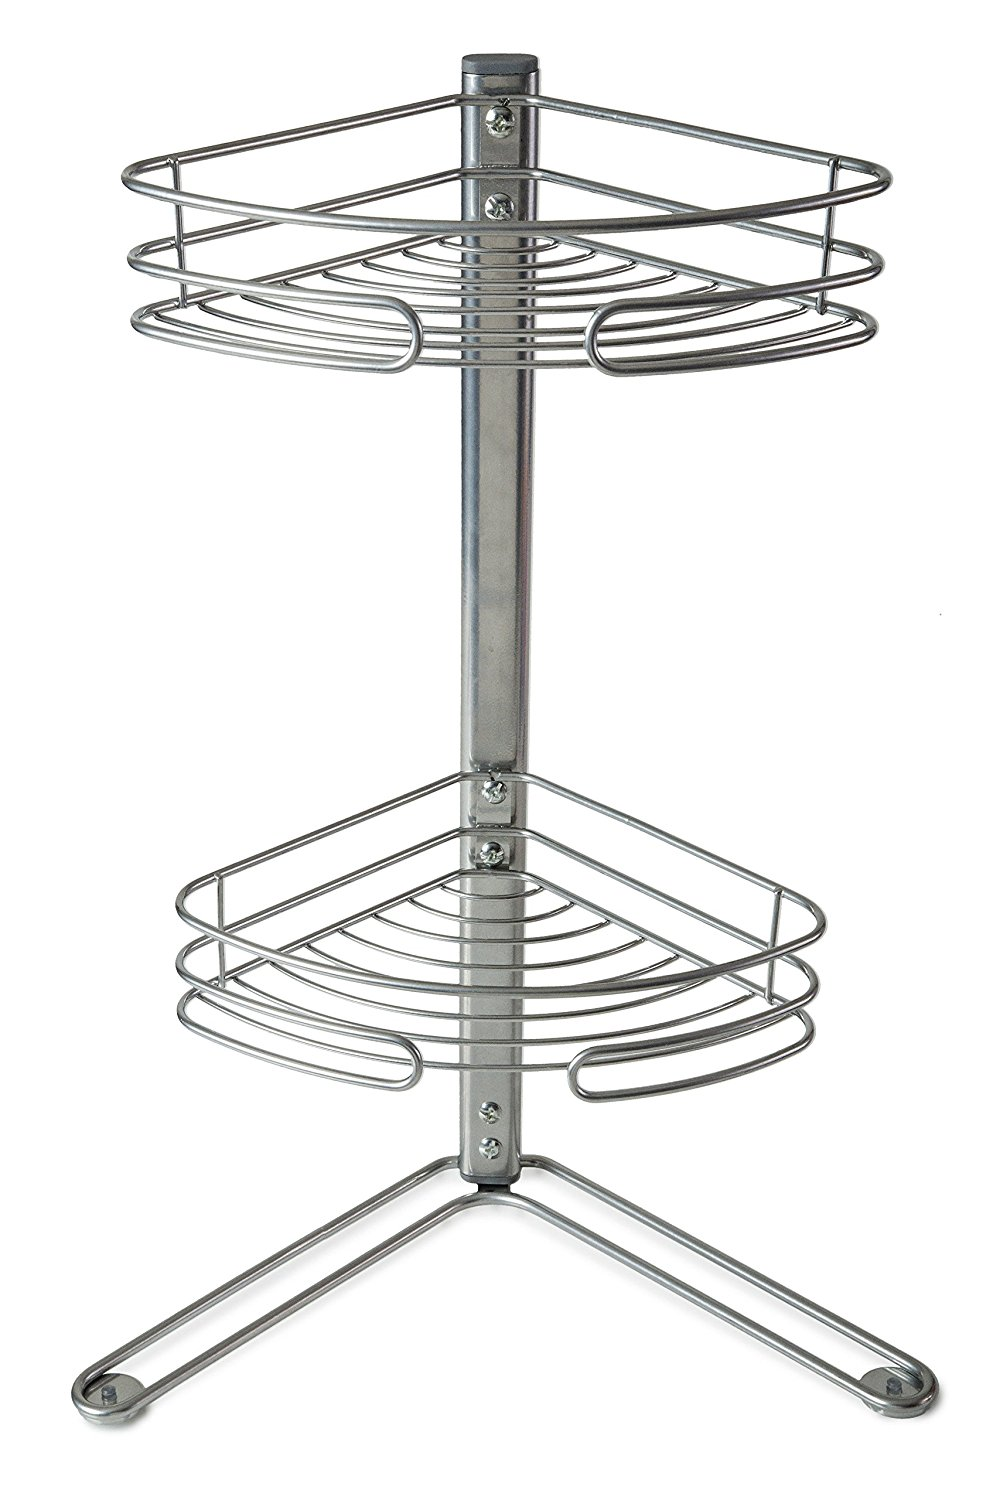 Shower Tension Rod Caddy | Stainless Steel Corner Shower Caddy | Simplehuman Shower Caddy